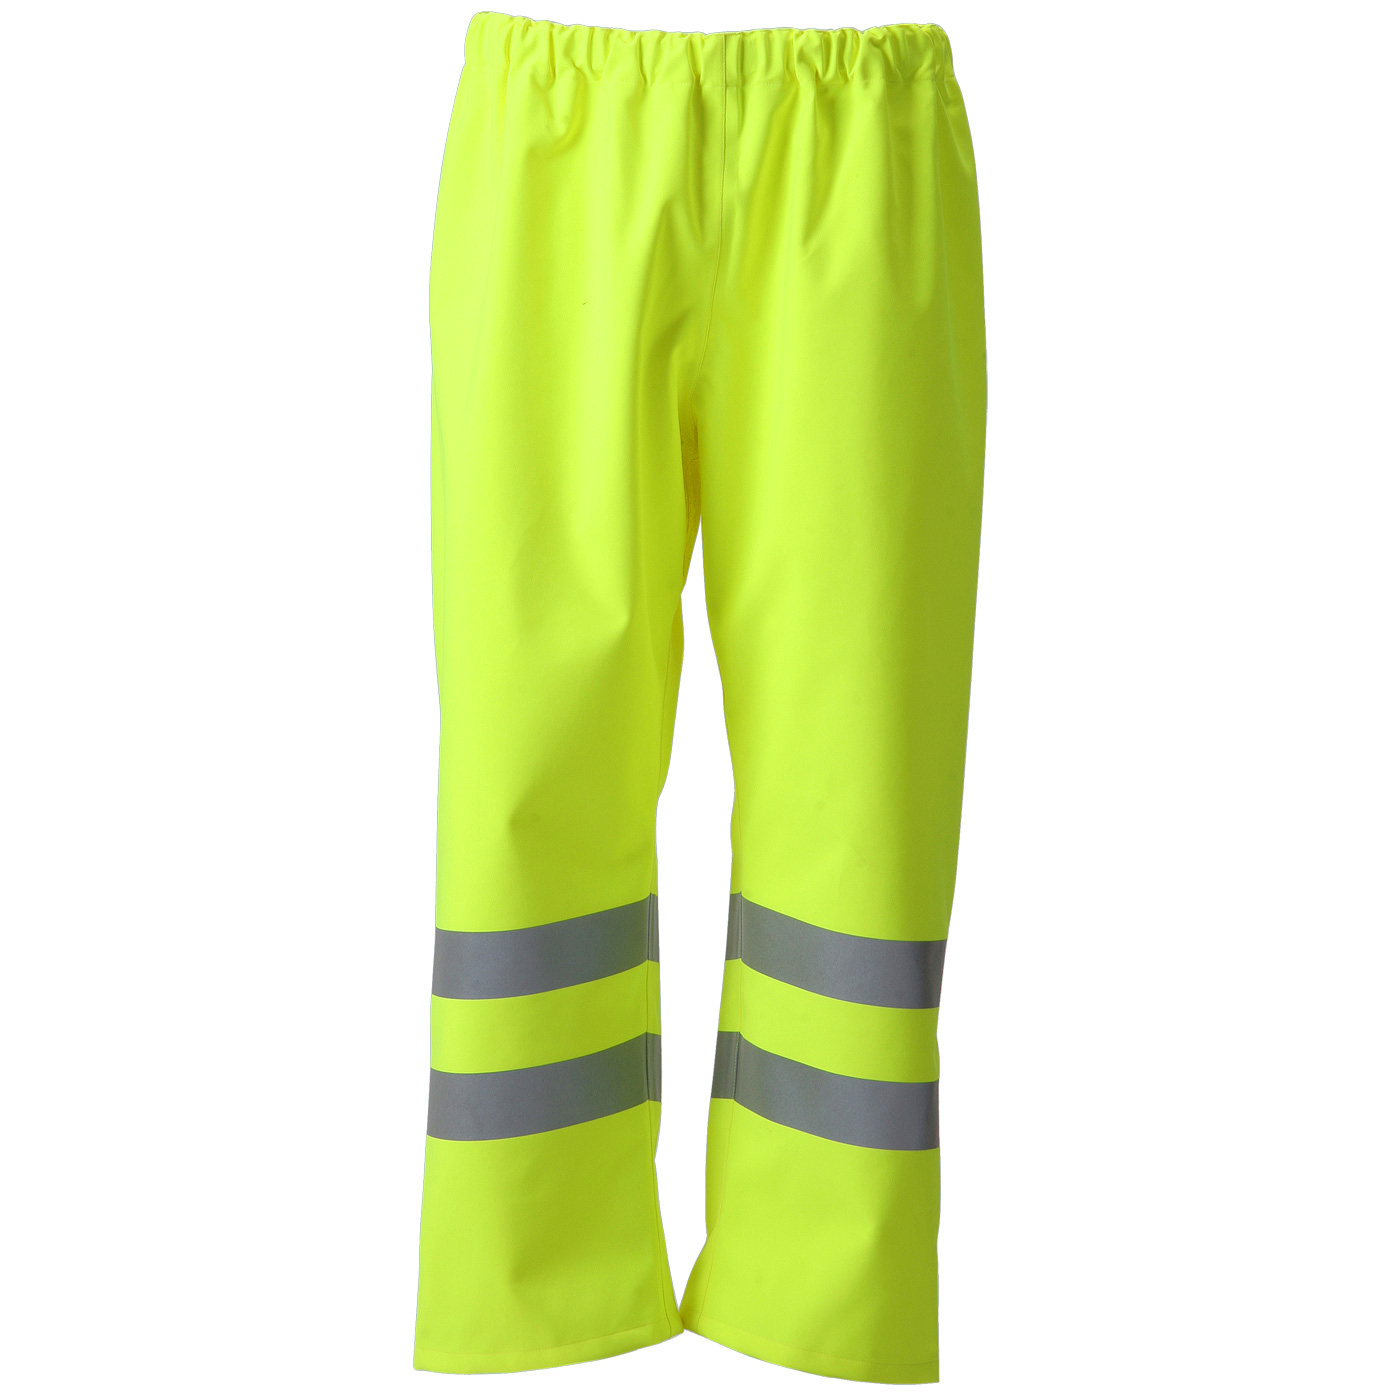 Weatherproof B-Seen Gore-Tex Over Trousers Foul Weather XL Saturn Yellow Ref GTHV160SYXL *Up to 3 Day Leadtime*